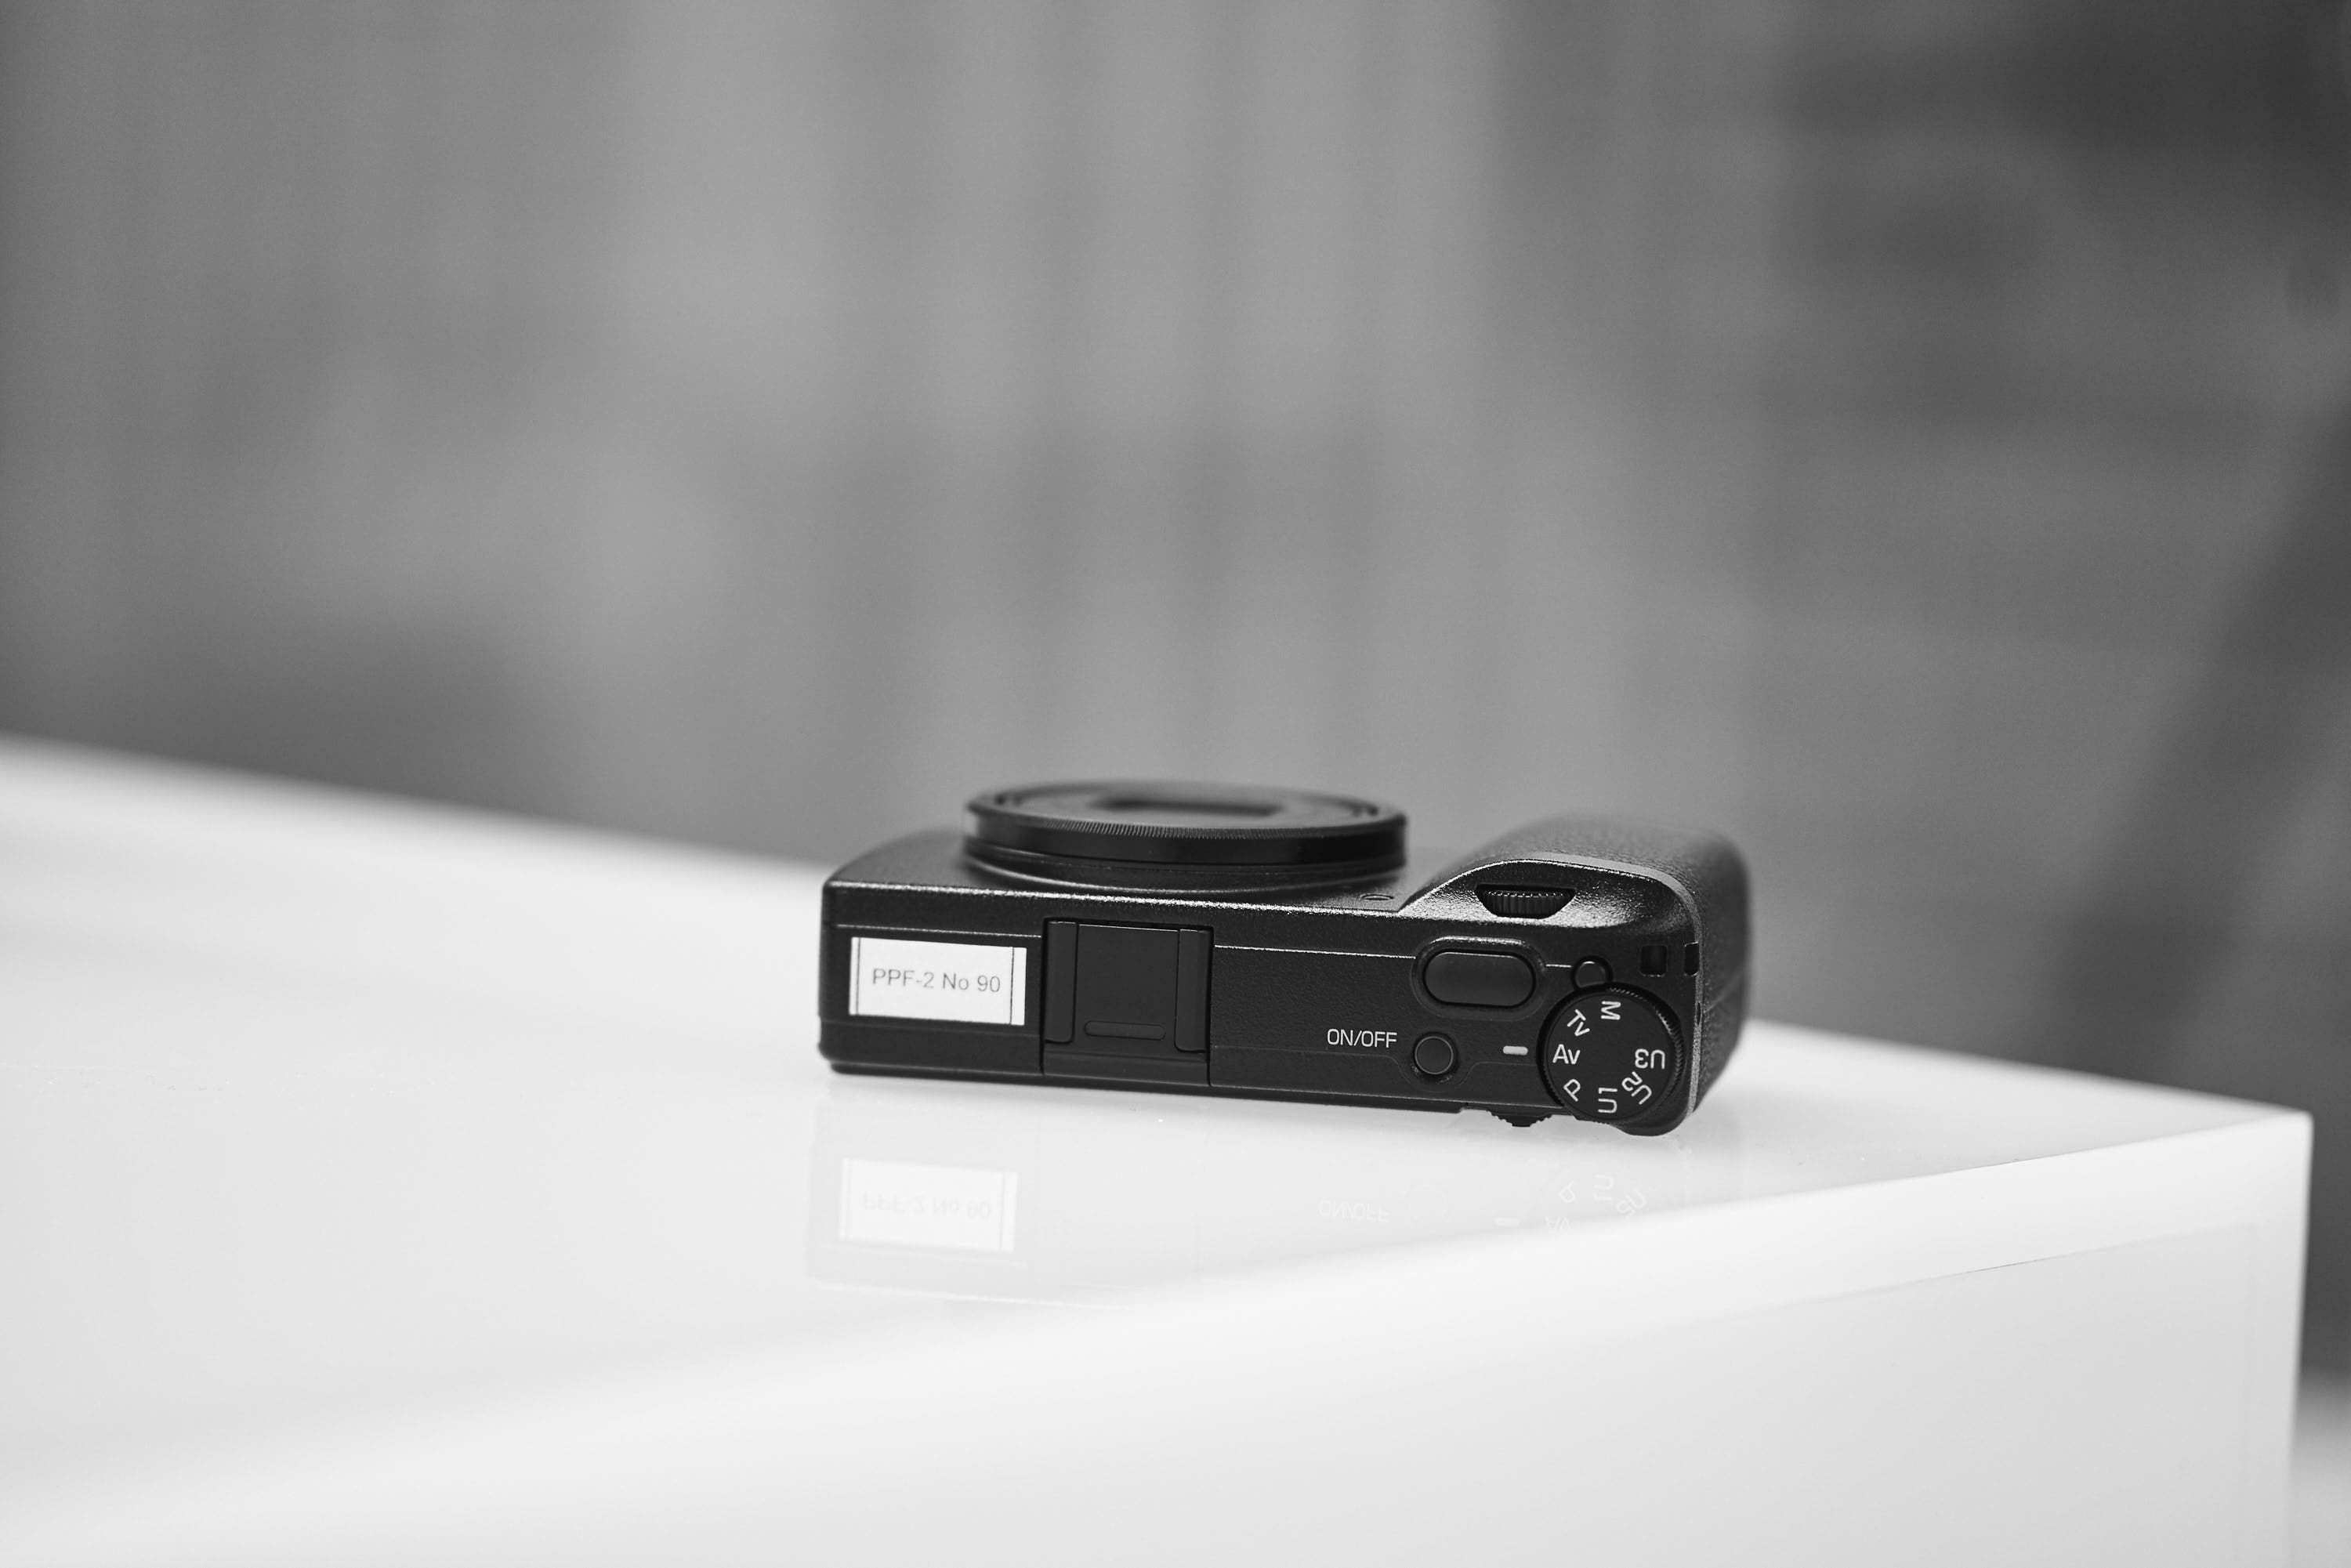 Here we see the top profile of the ricoh gr iii its a thin camera as you can see ricoh removed the pop up flash which is honestly sad to me